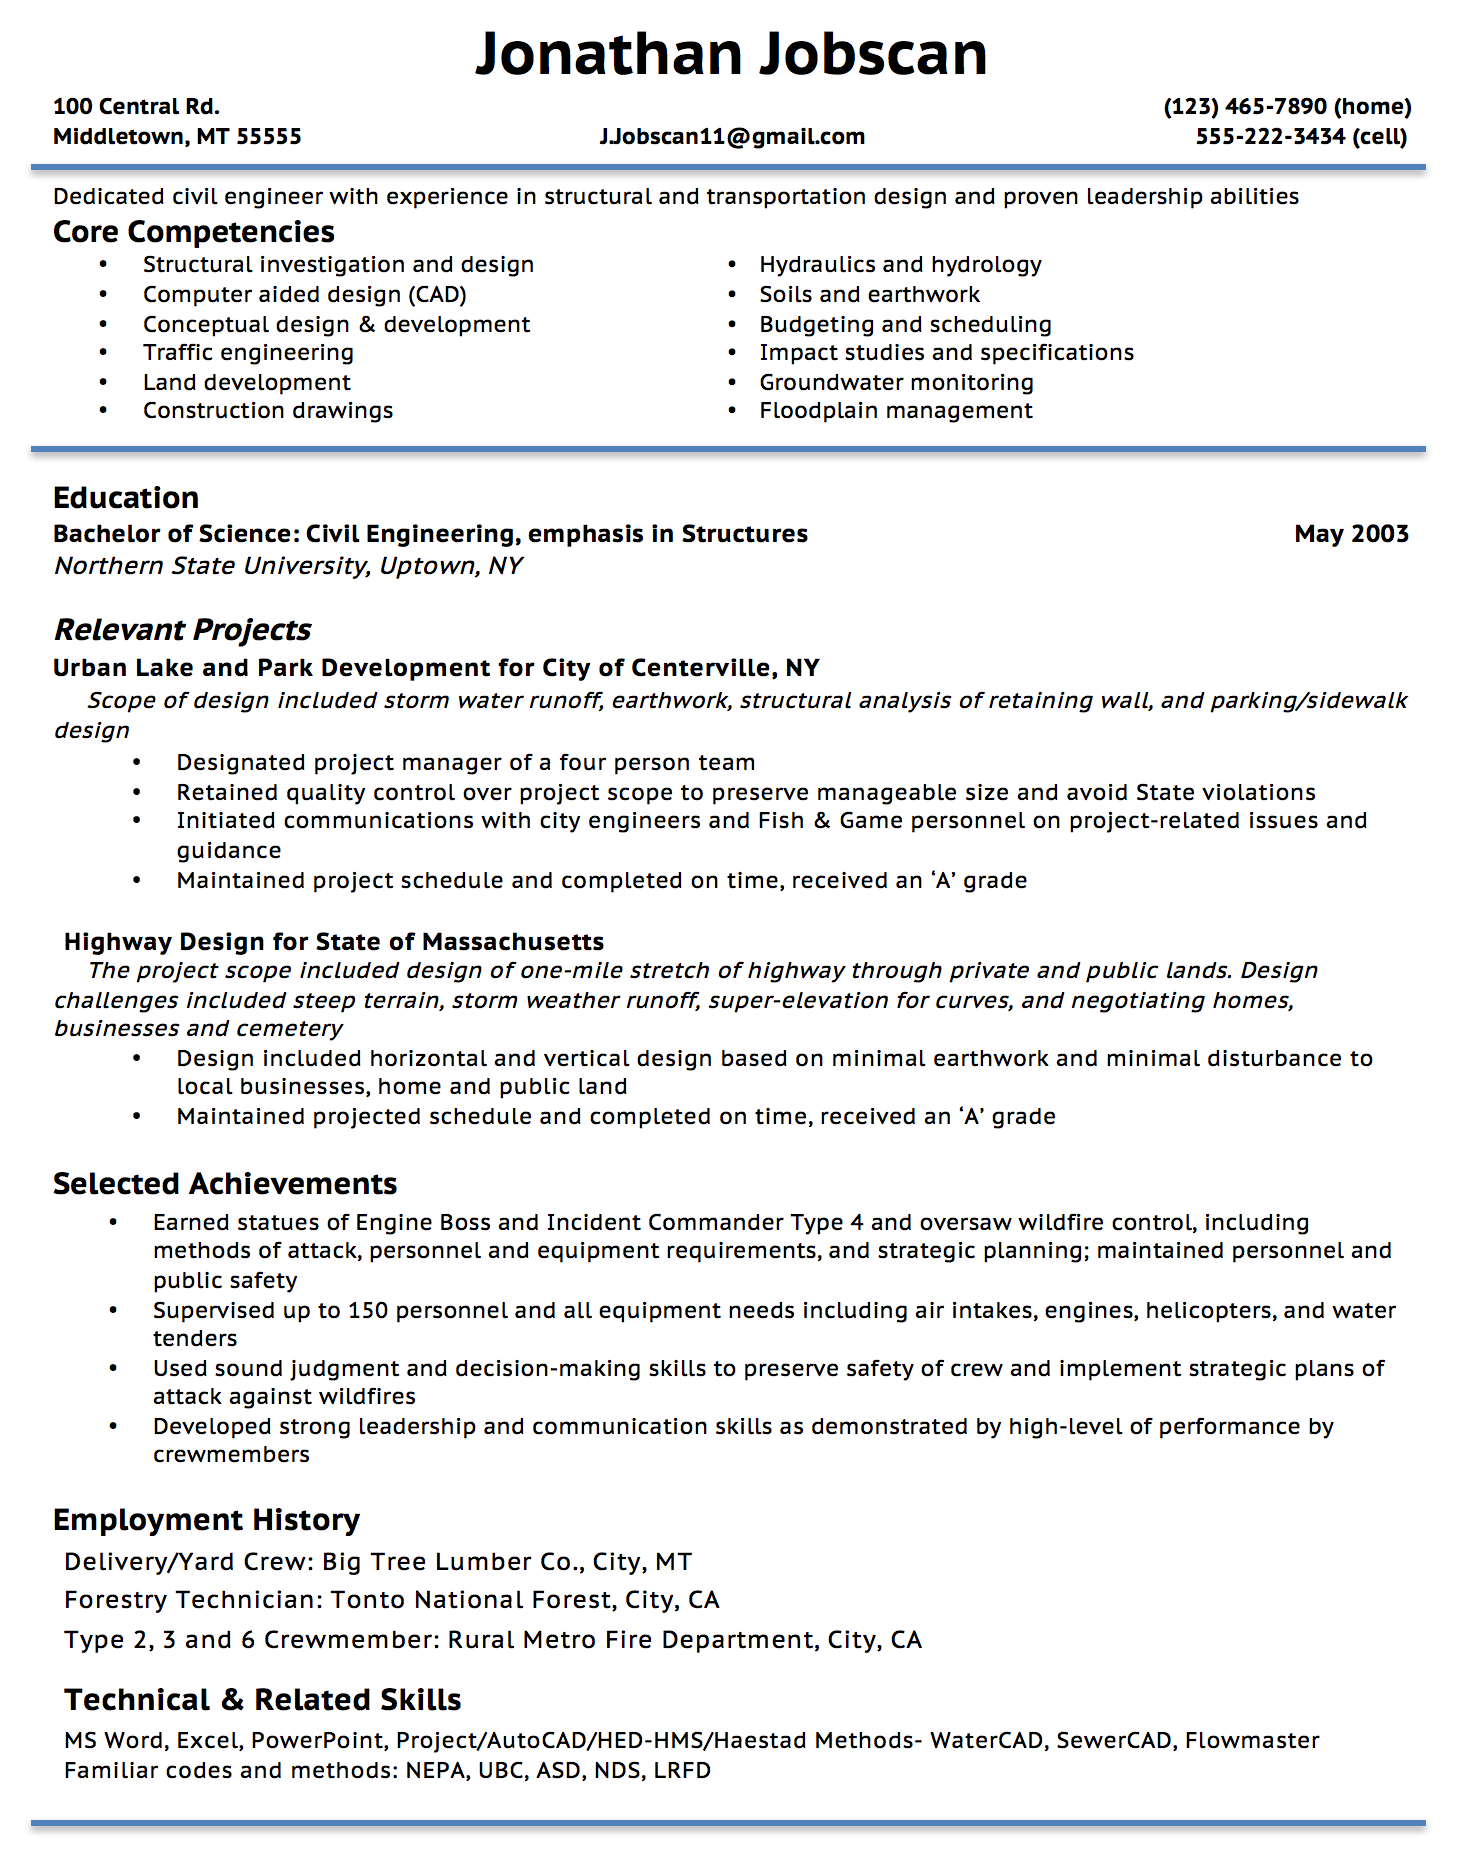 Opposenewapstandardsus  Pleasant Resume Writing Guide  Jobscan With Gorgeous Example Of A Functional Resume Format With Easy On The Eye Sample Pilot Resume Also Research Assistant Resume Sample In Addition Certified Nursing Assistant Resume Objective And Banquet Server Job Description For Resume As Well As Proofreader Resume Additionally Order Selector Resume From Jobscanco With Opposenewapstandardsus  Gorgeous Resume Writing Guide  Jobscan With Easy On The Eye Example Of A Functional Resume Format And Pleasant Sample Pilot Resume Also Research Assistant Resume Sample In Addition Certified Nursing Assistant Resume Objective From Jobscanco